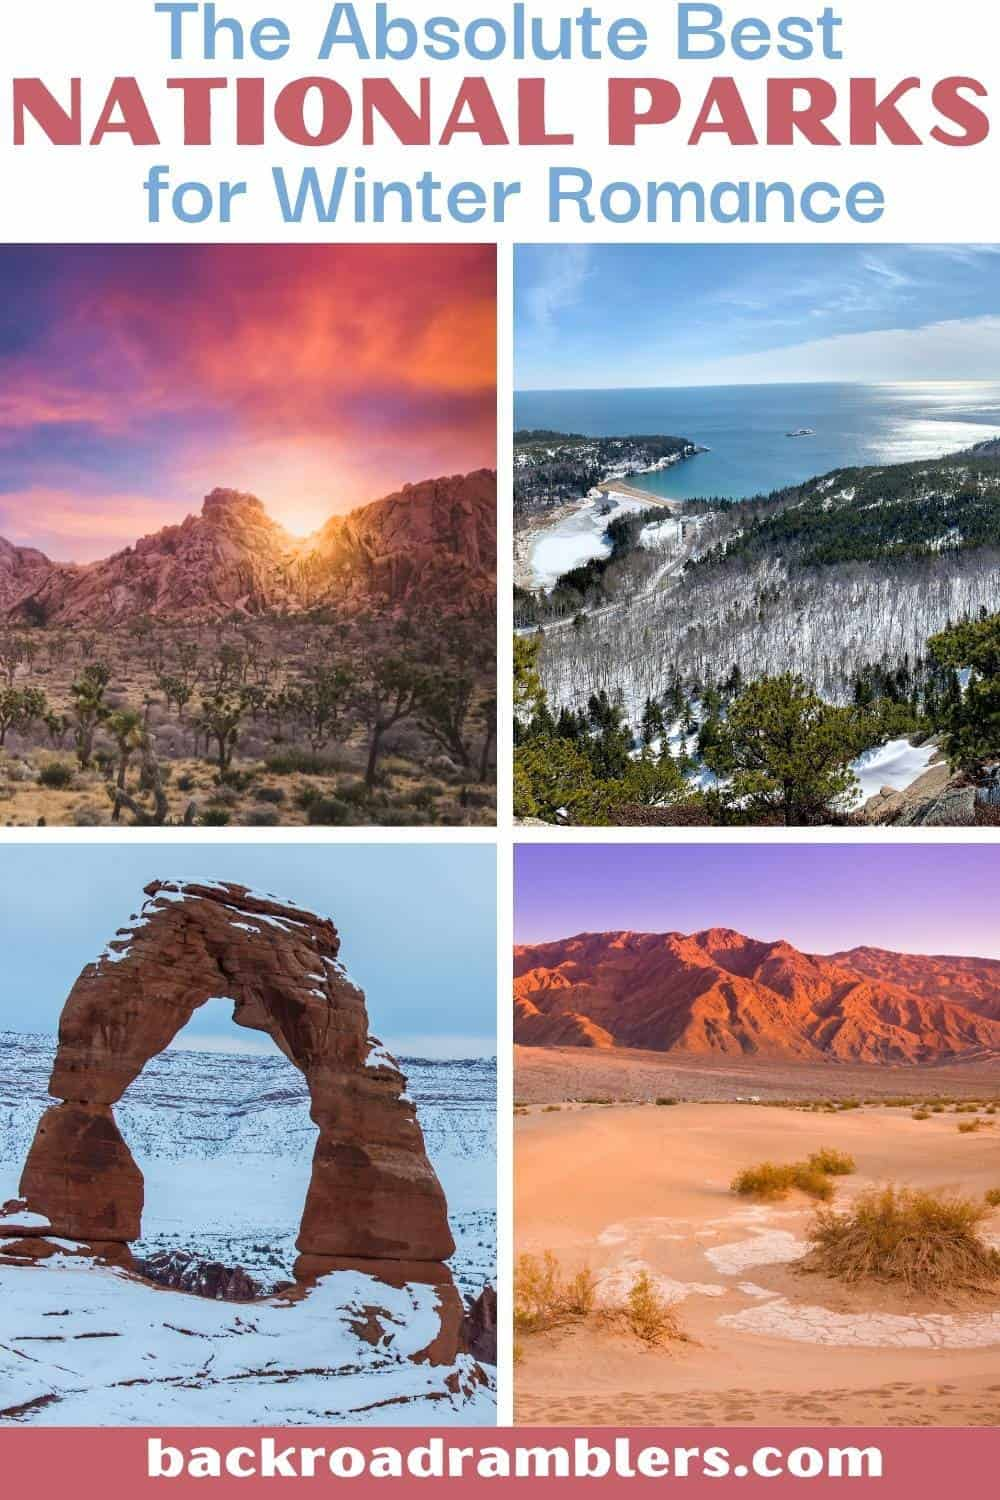 A collage of photos featuring American National Parks. Text overlay: The absolute best national parks for winter romance.